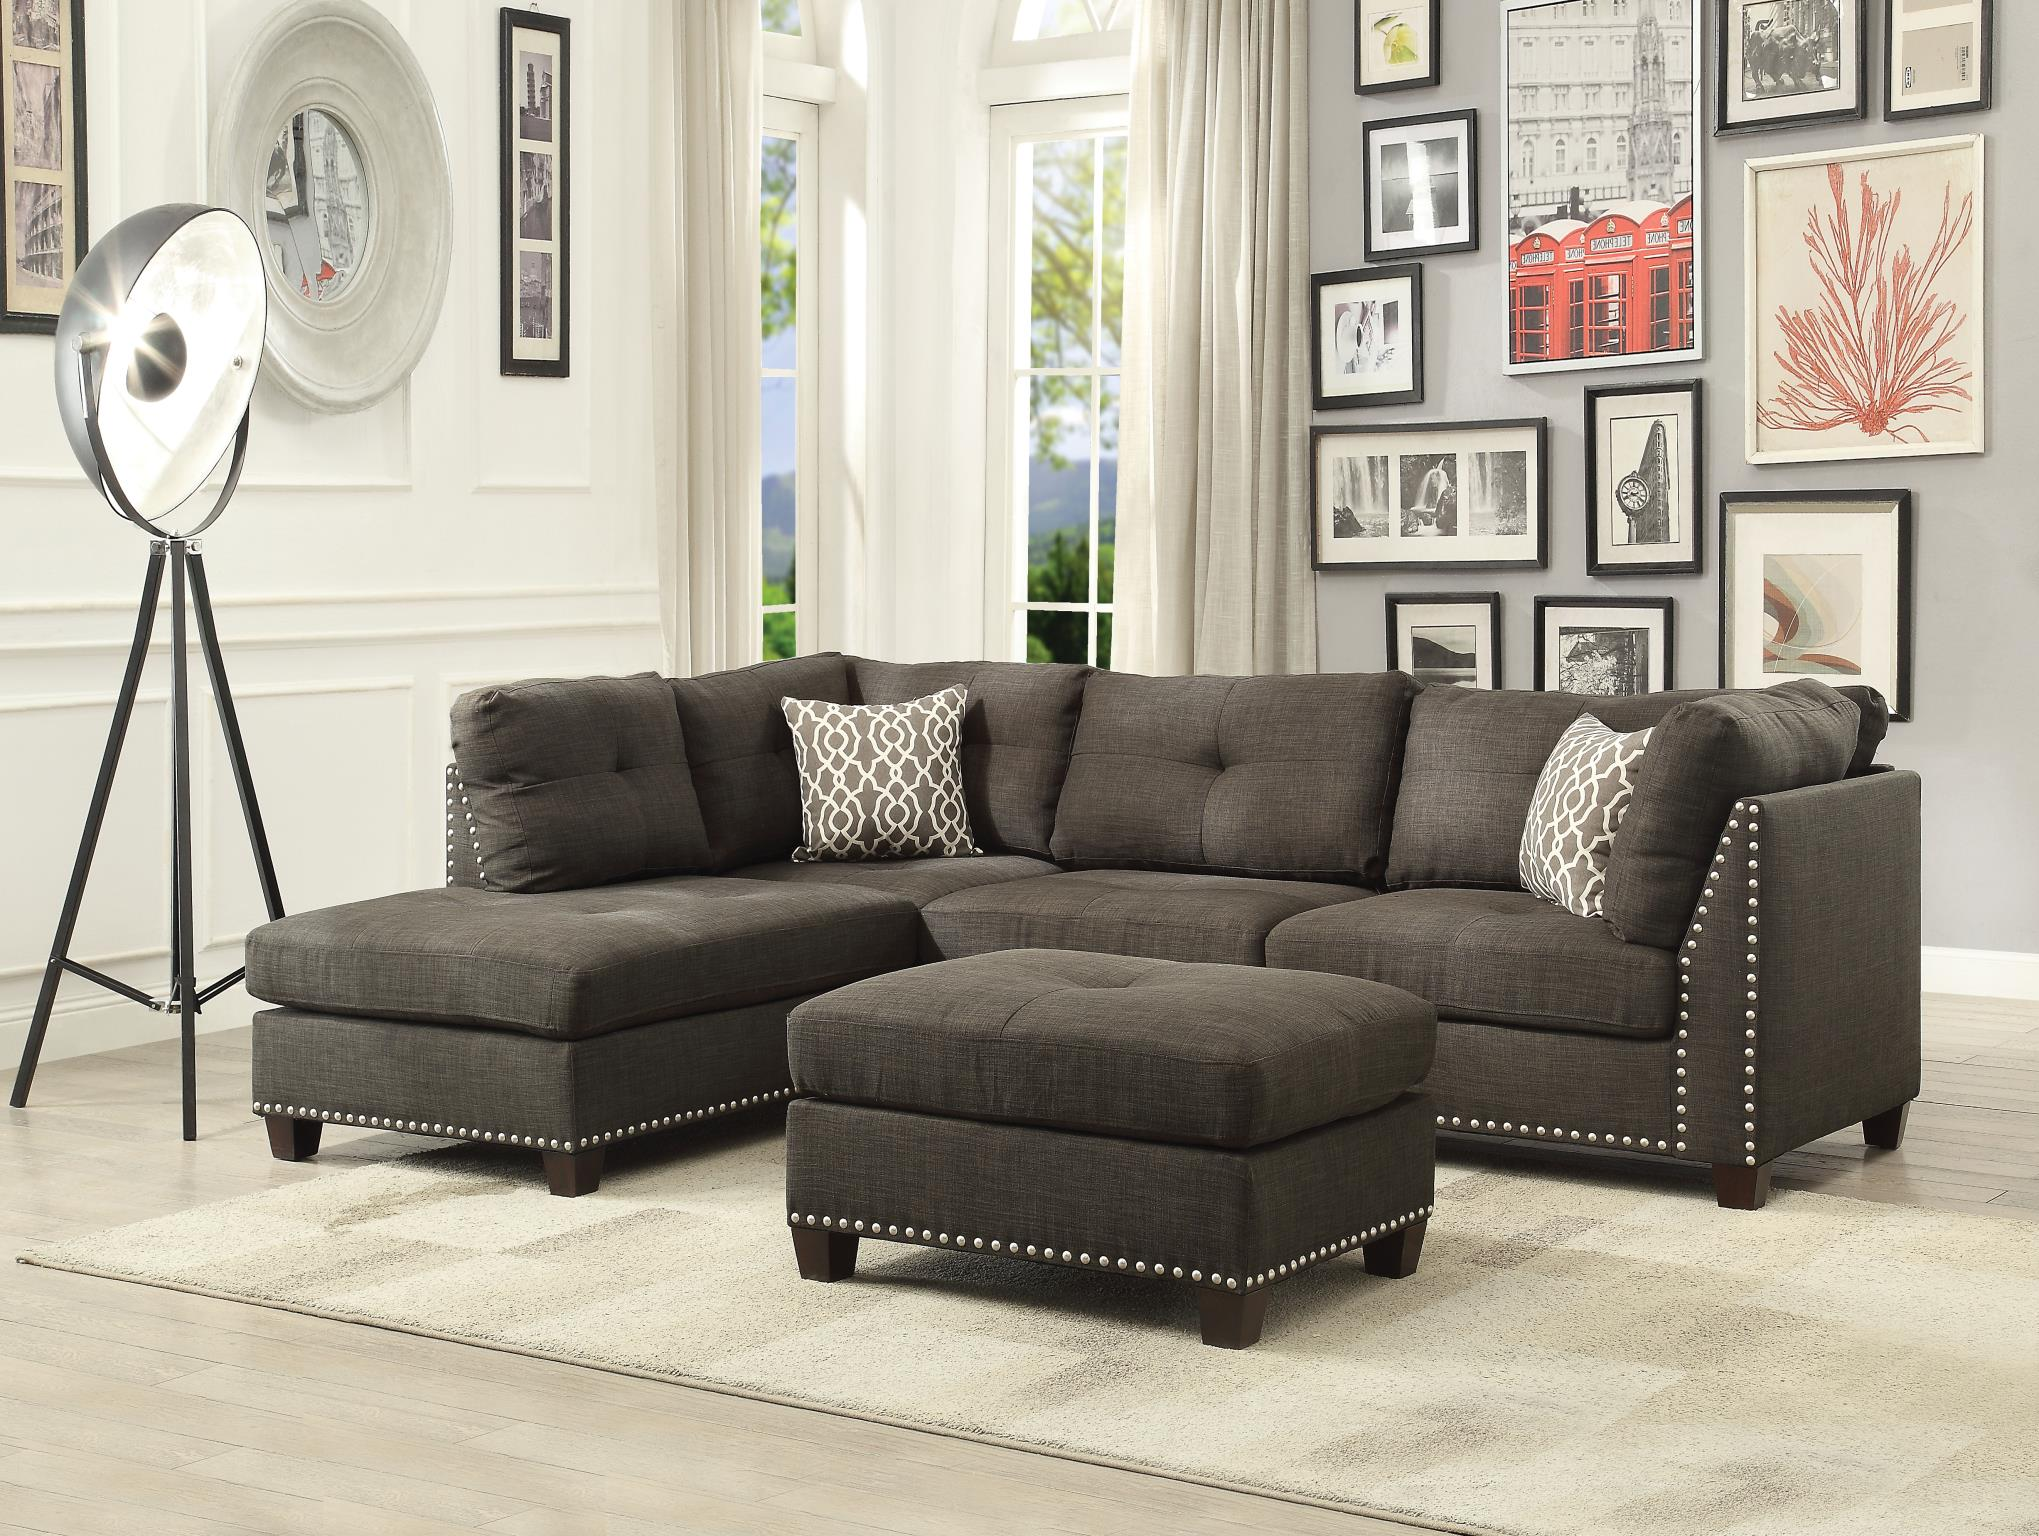 Complete Sectional Sofa w/ Left Facing Chaise and Ottoman